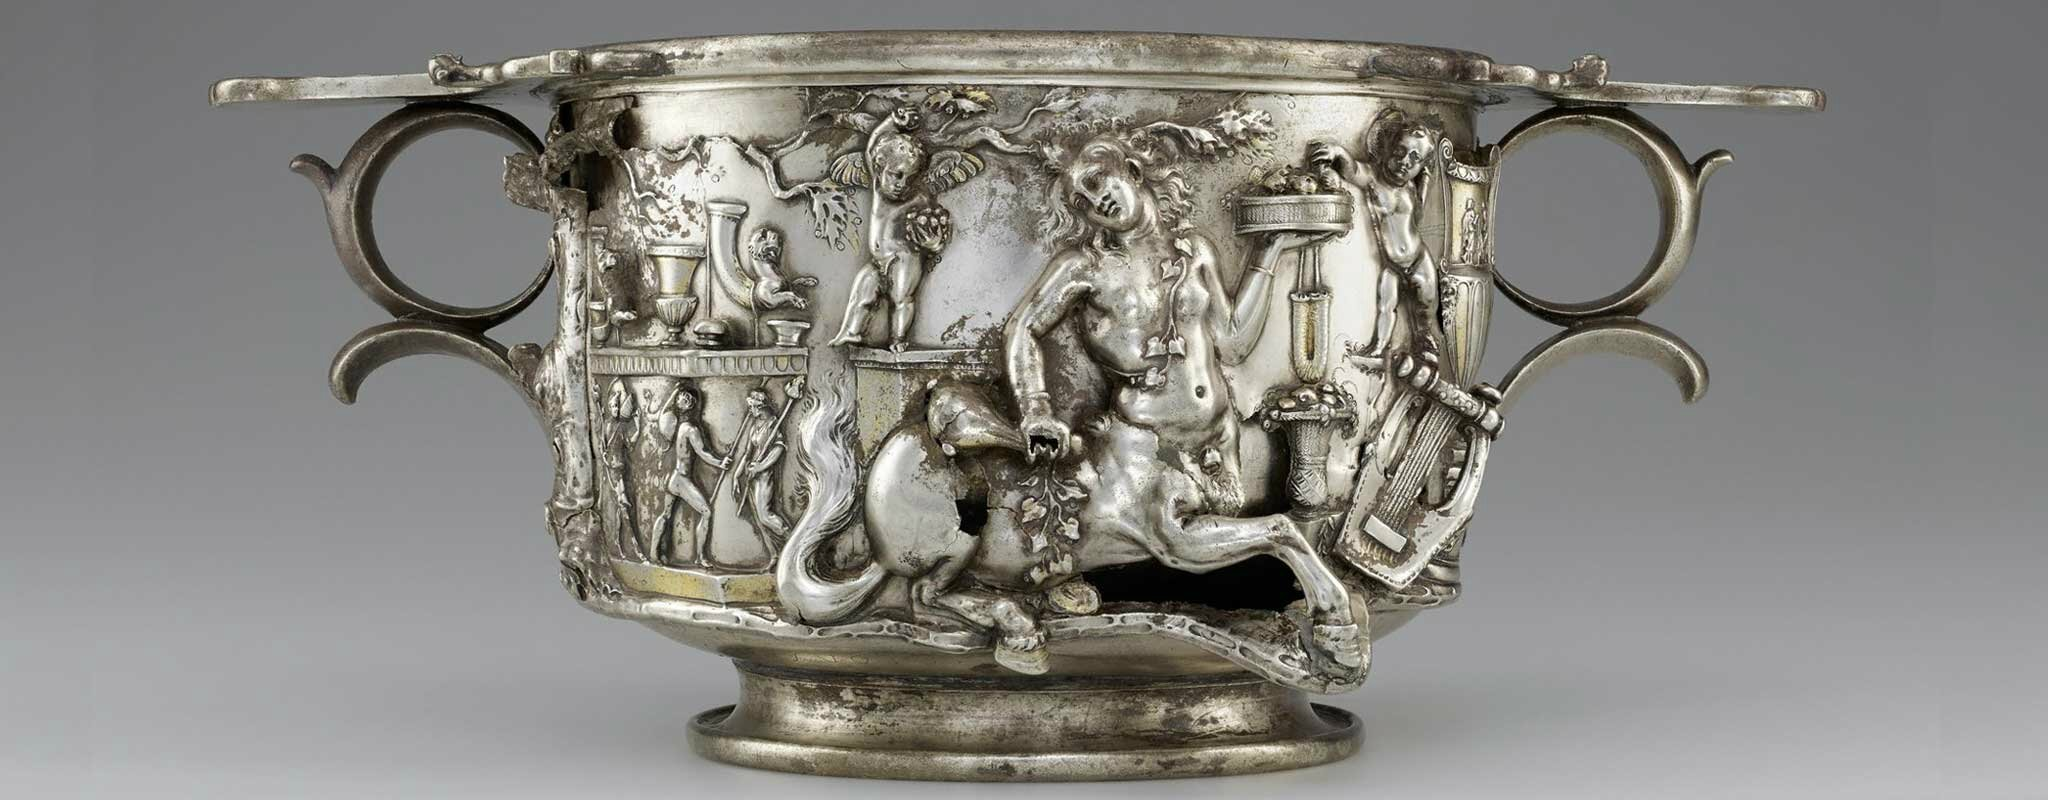 Luxurious treasures at Nelson-Atkins Museum of Art offer glimpse into Roman lifestyle